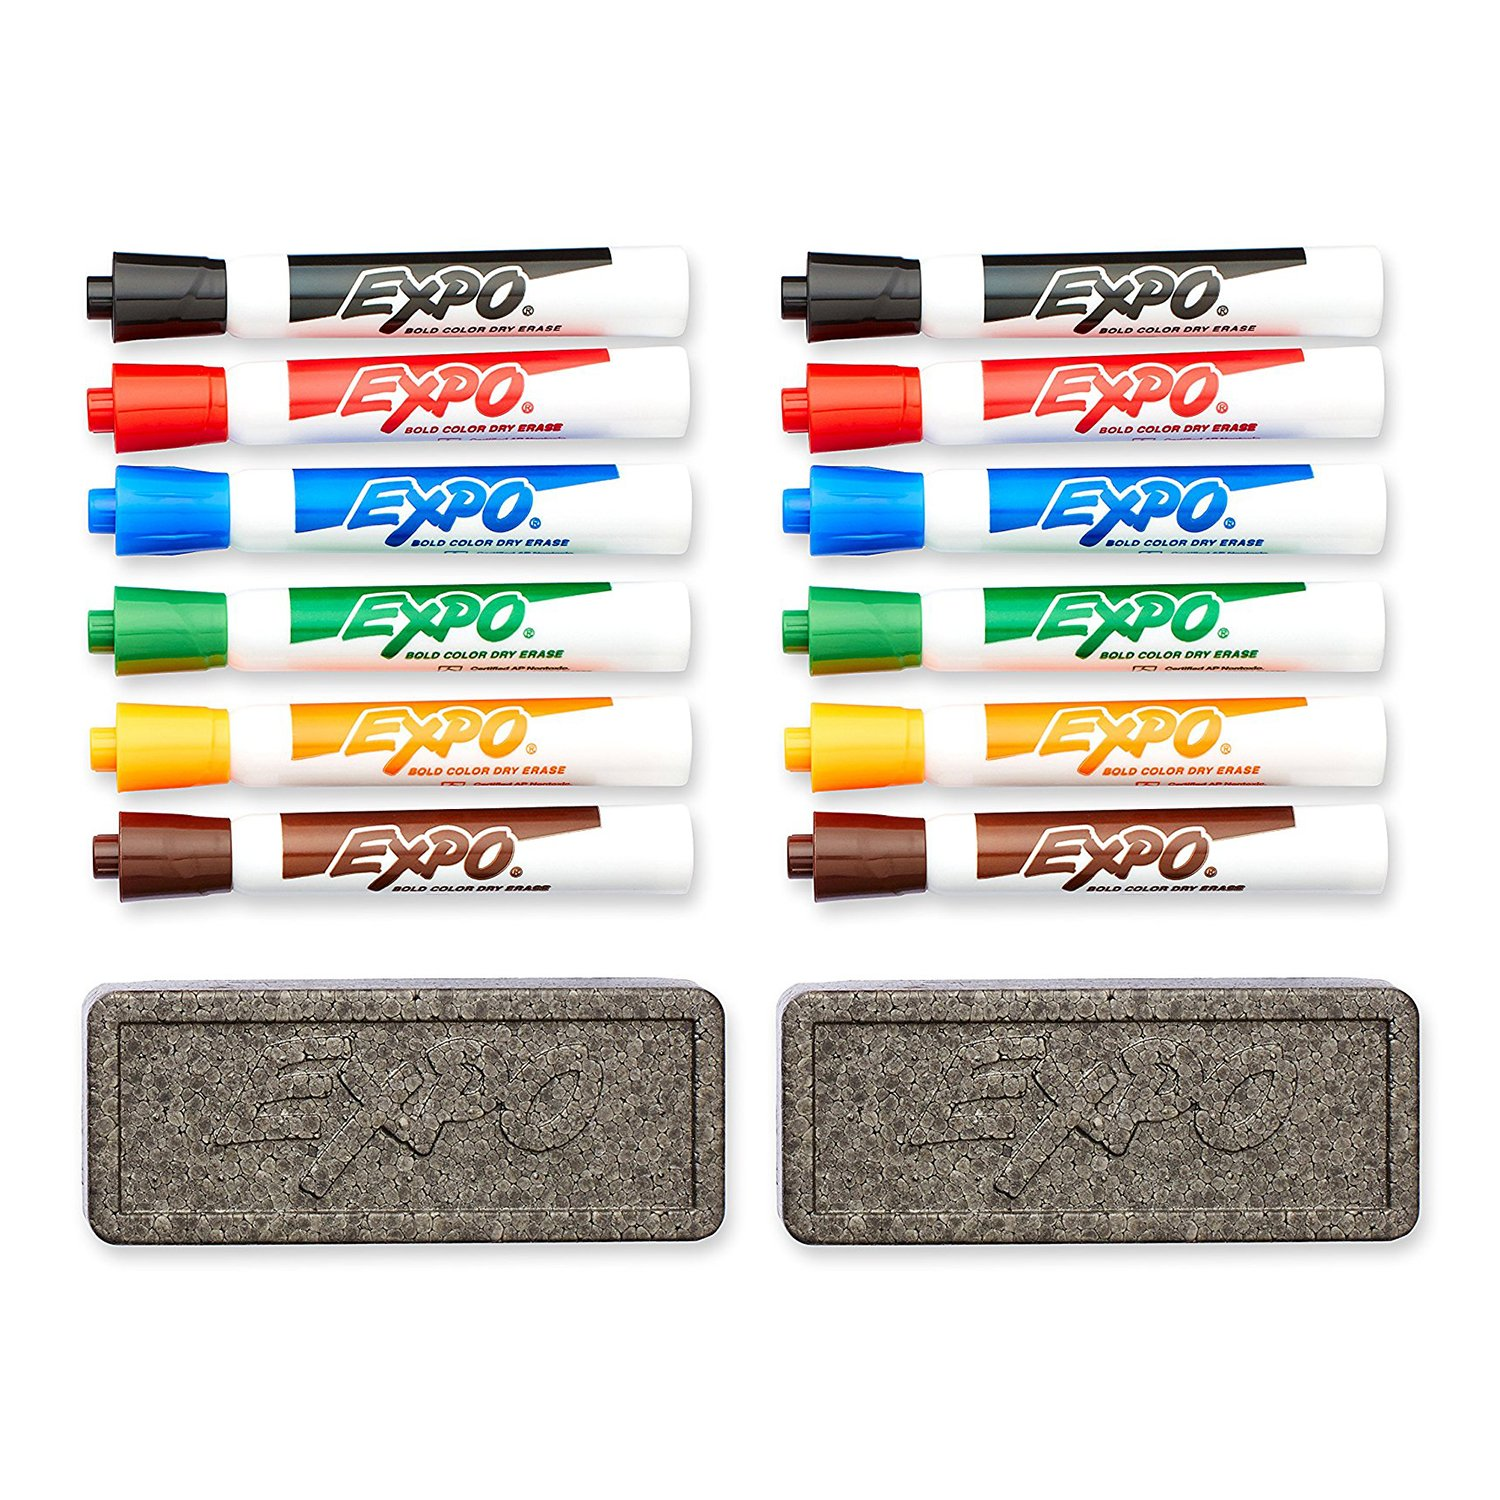 Amazon.com : EXPO Original Dry Erase Set, Chisel Tip, Assorted Colors, 7-Piece with Organizer, 2-Sets : Office Products